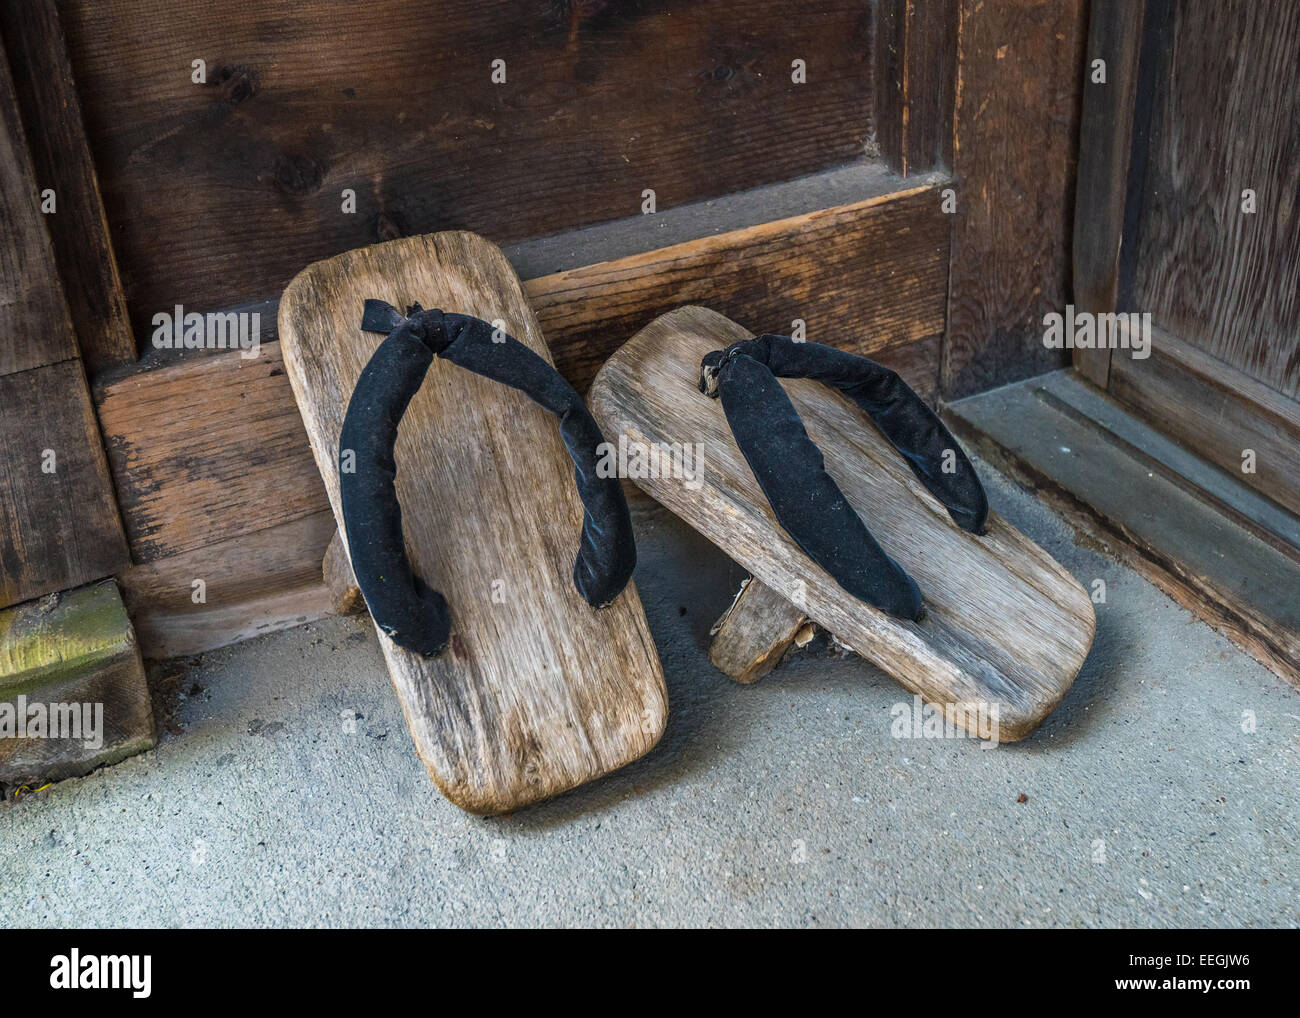 Geta, traditional japanese footwear - Stock Image